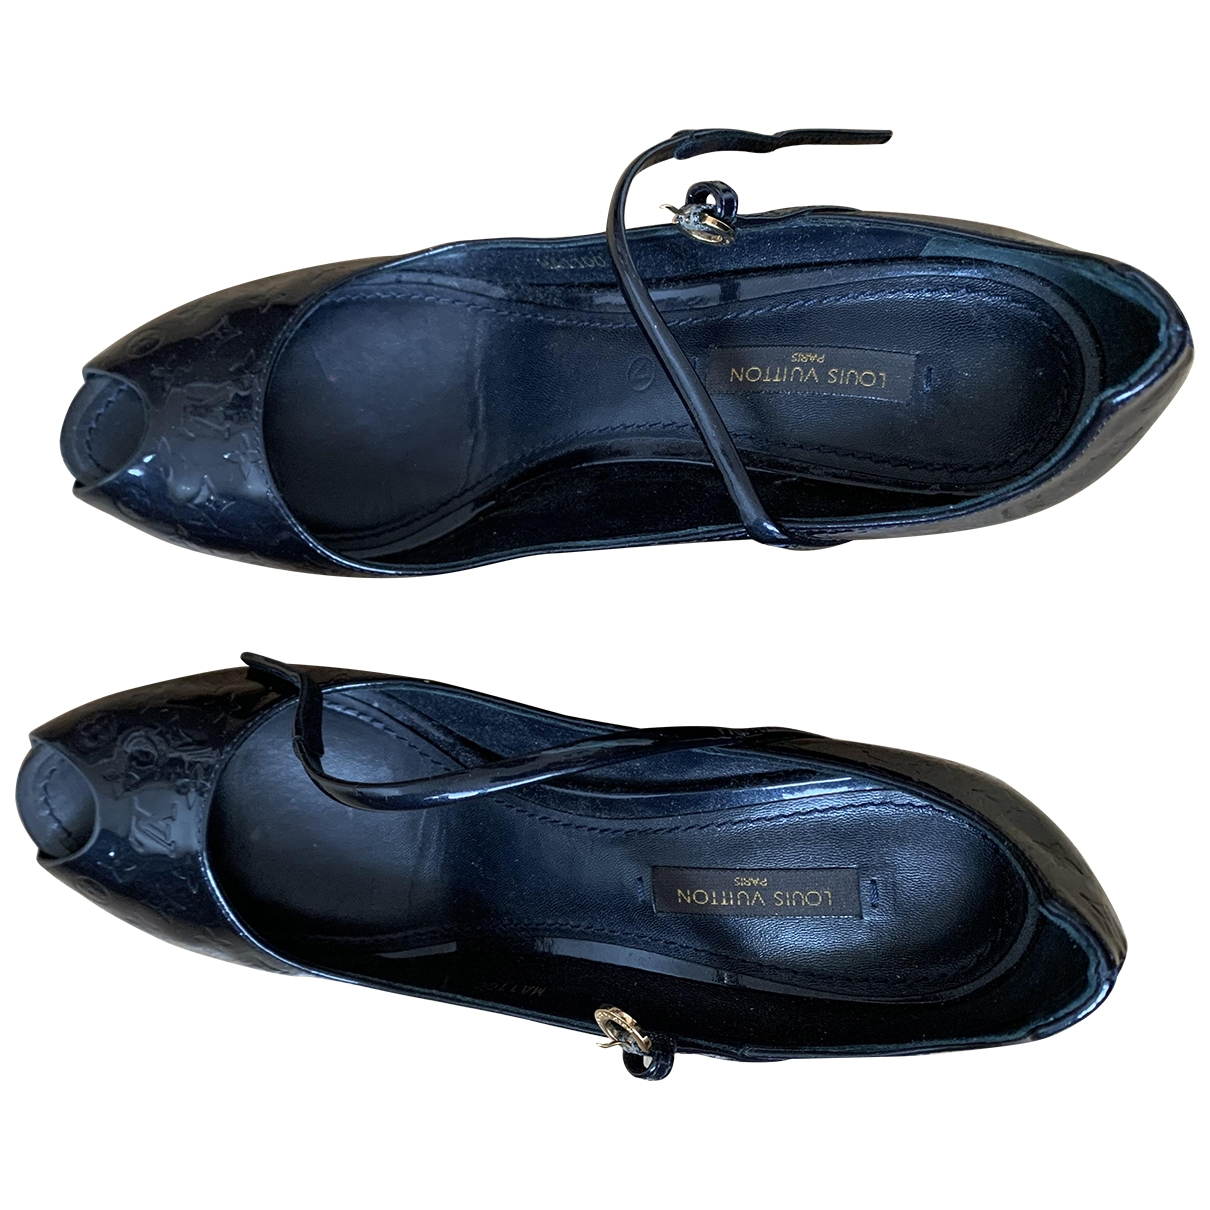 Louis Vuitton \N Navy Patent leather Heels for Women 38 EU